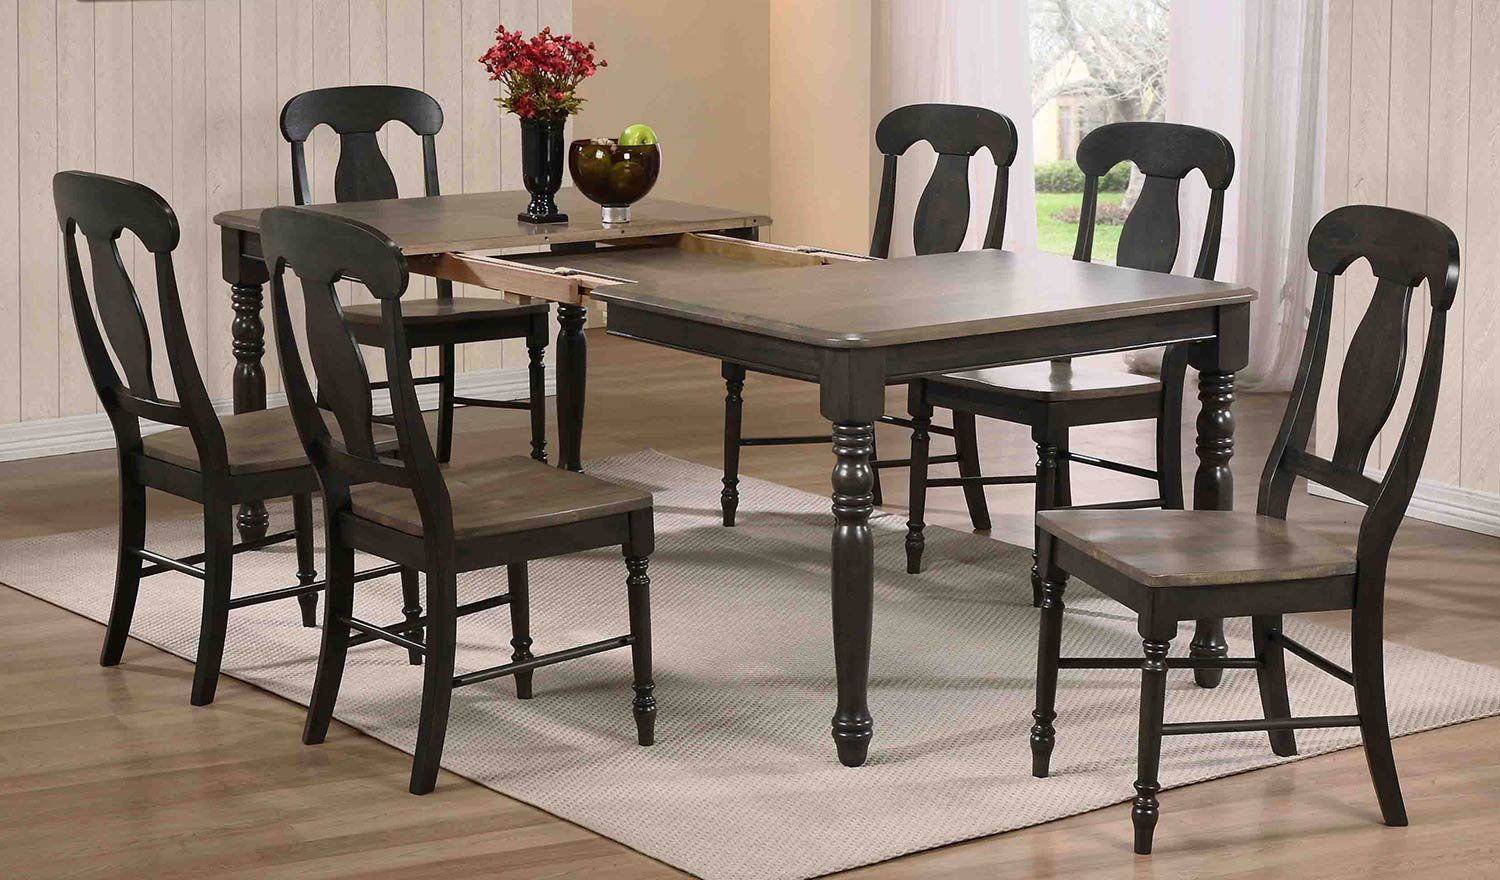 Iconic Furniture Rectangular Leg Dining Set with Napoleon Back Dining Chair - Grey Stone/Black Stone